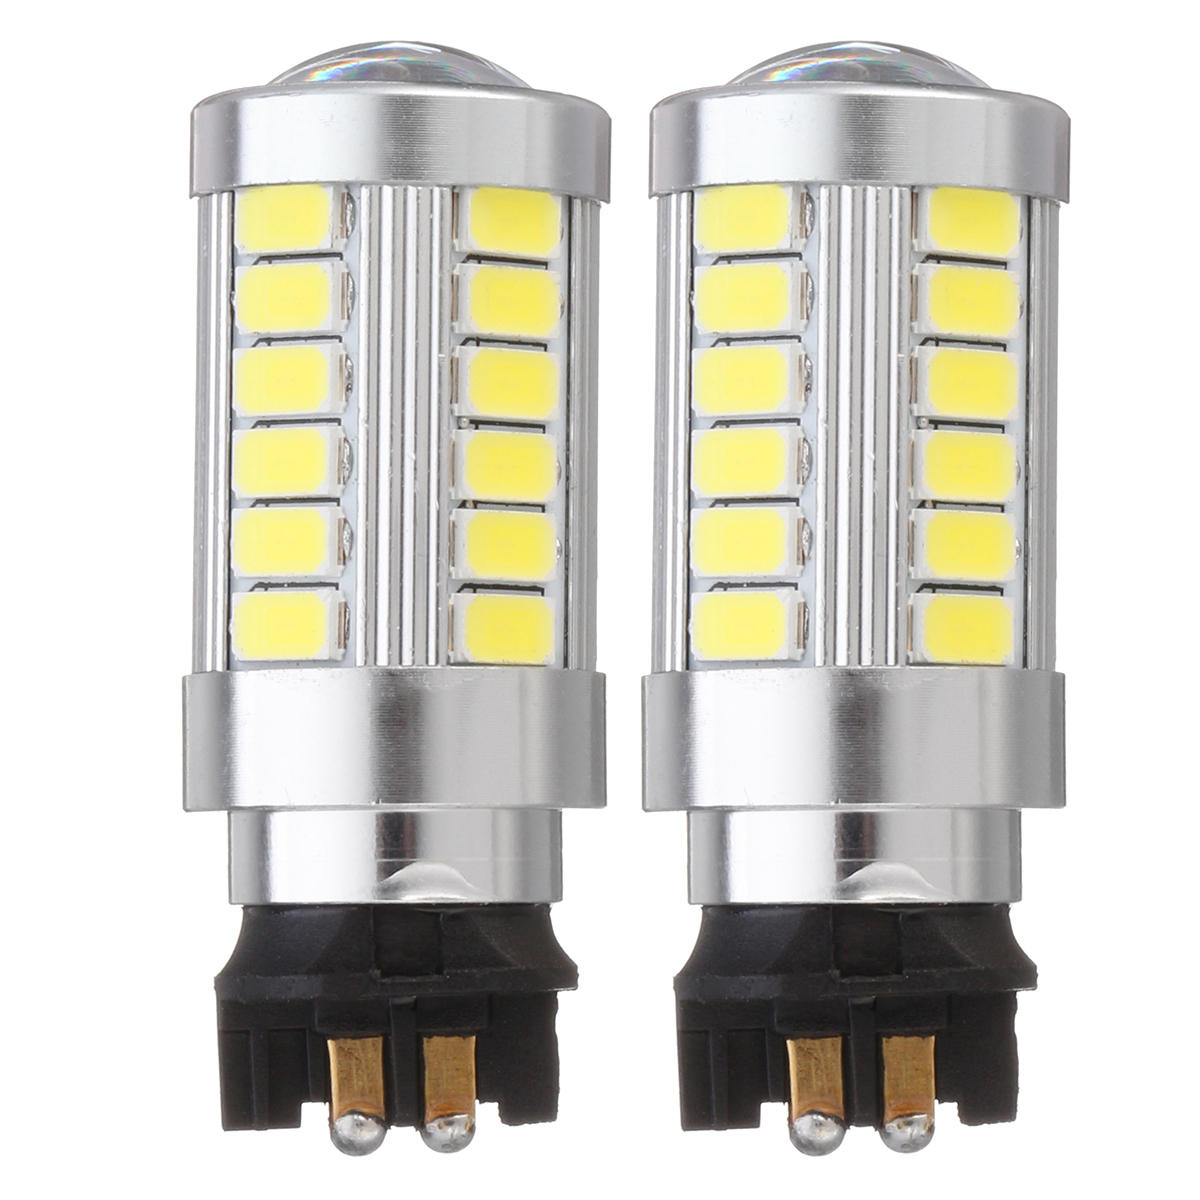 2PCS PW24W 33-SMD LED DRL Daytime Running Lights Replacement Fog Bulbs with Lens 12V 6500K White